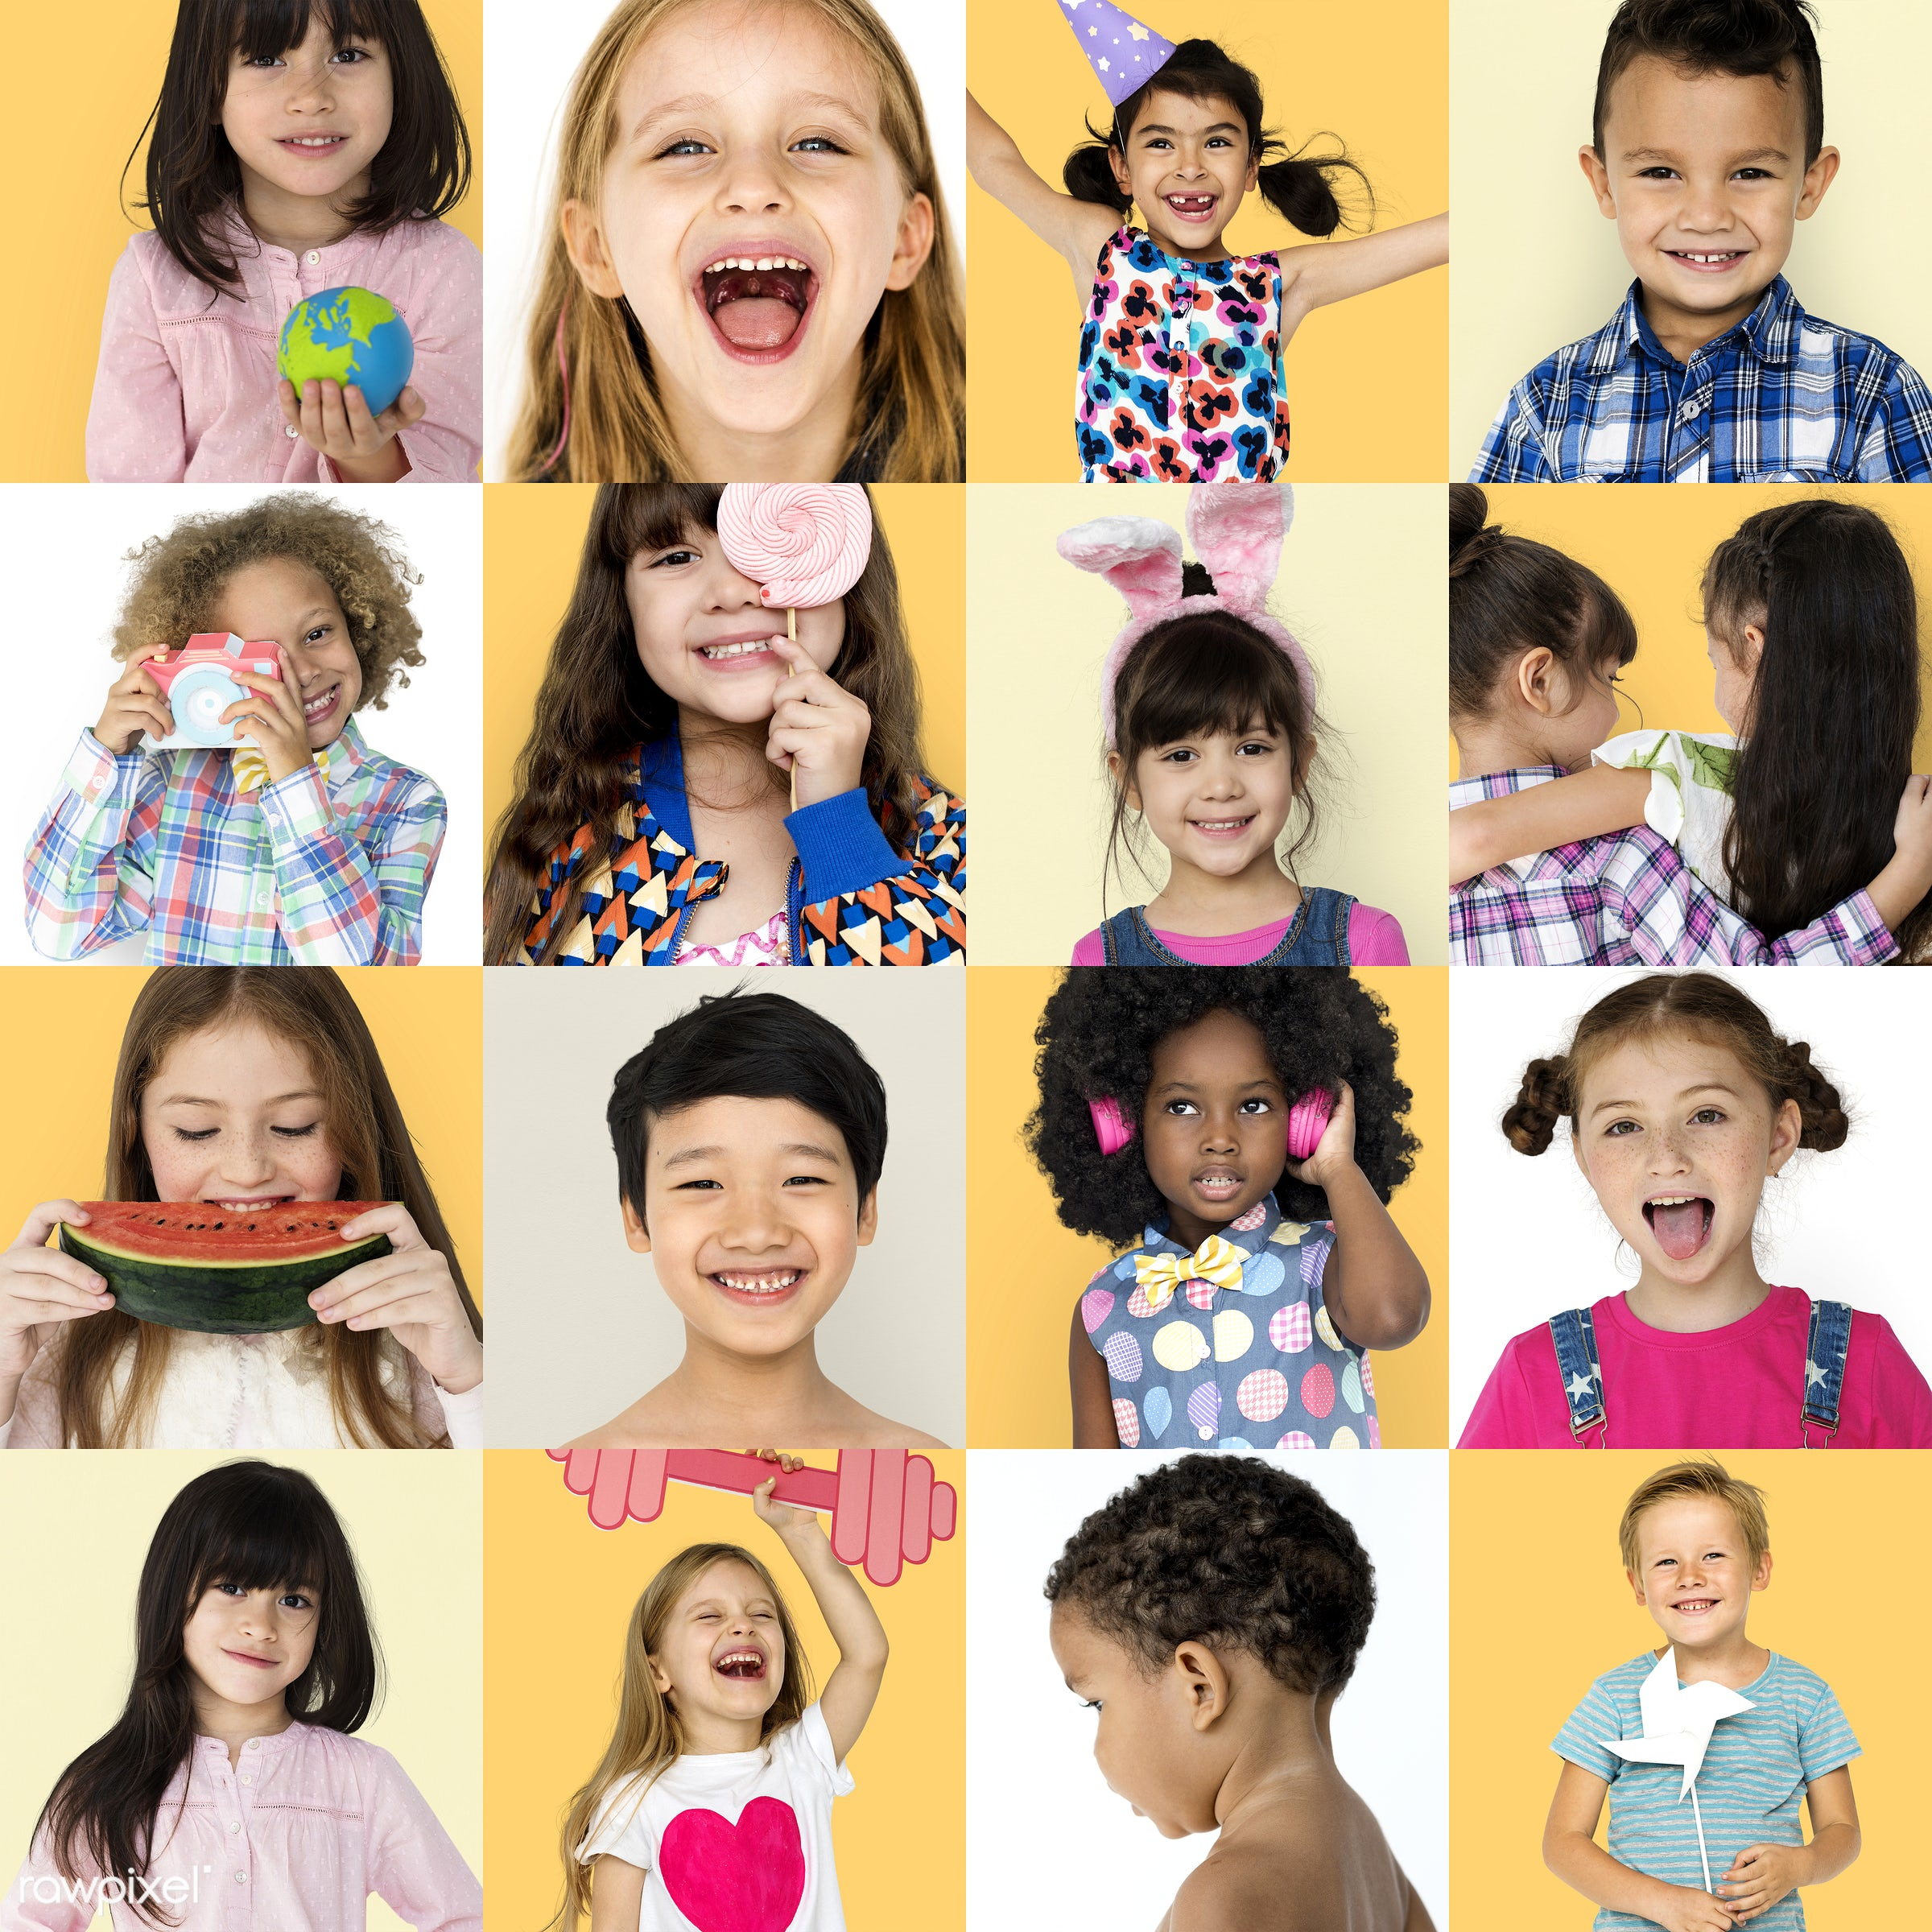 studio, person, diverse, purity, little, people, race, kid, childhood, cheerful, isolated, little girl, happiness, leisure,...